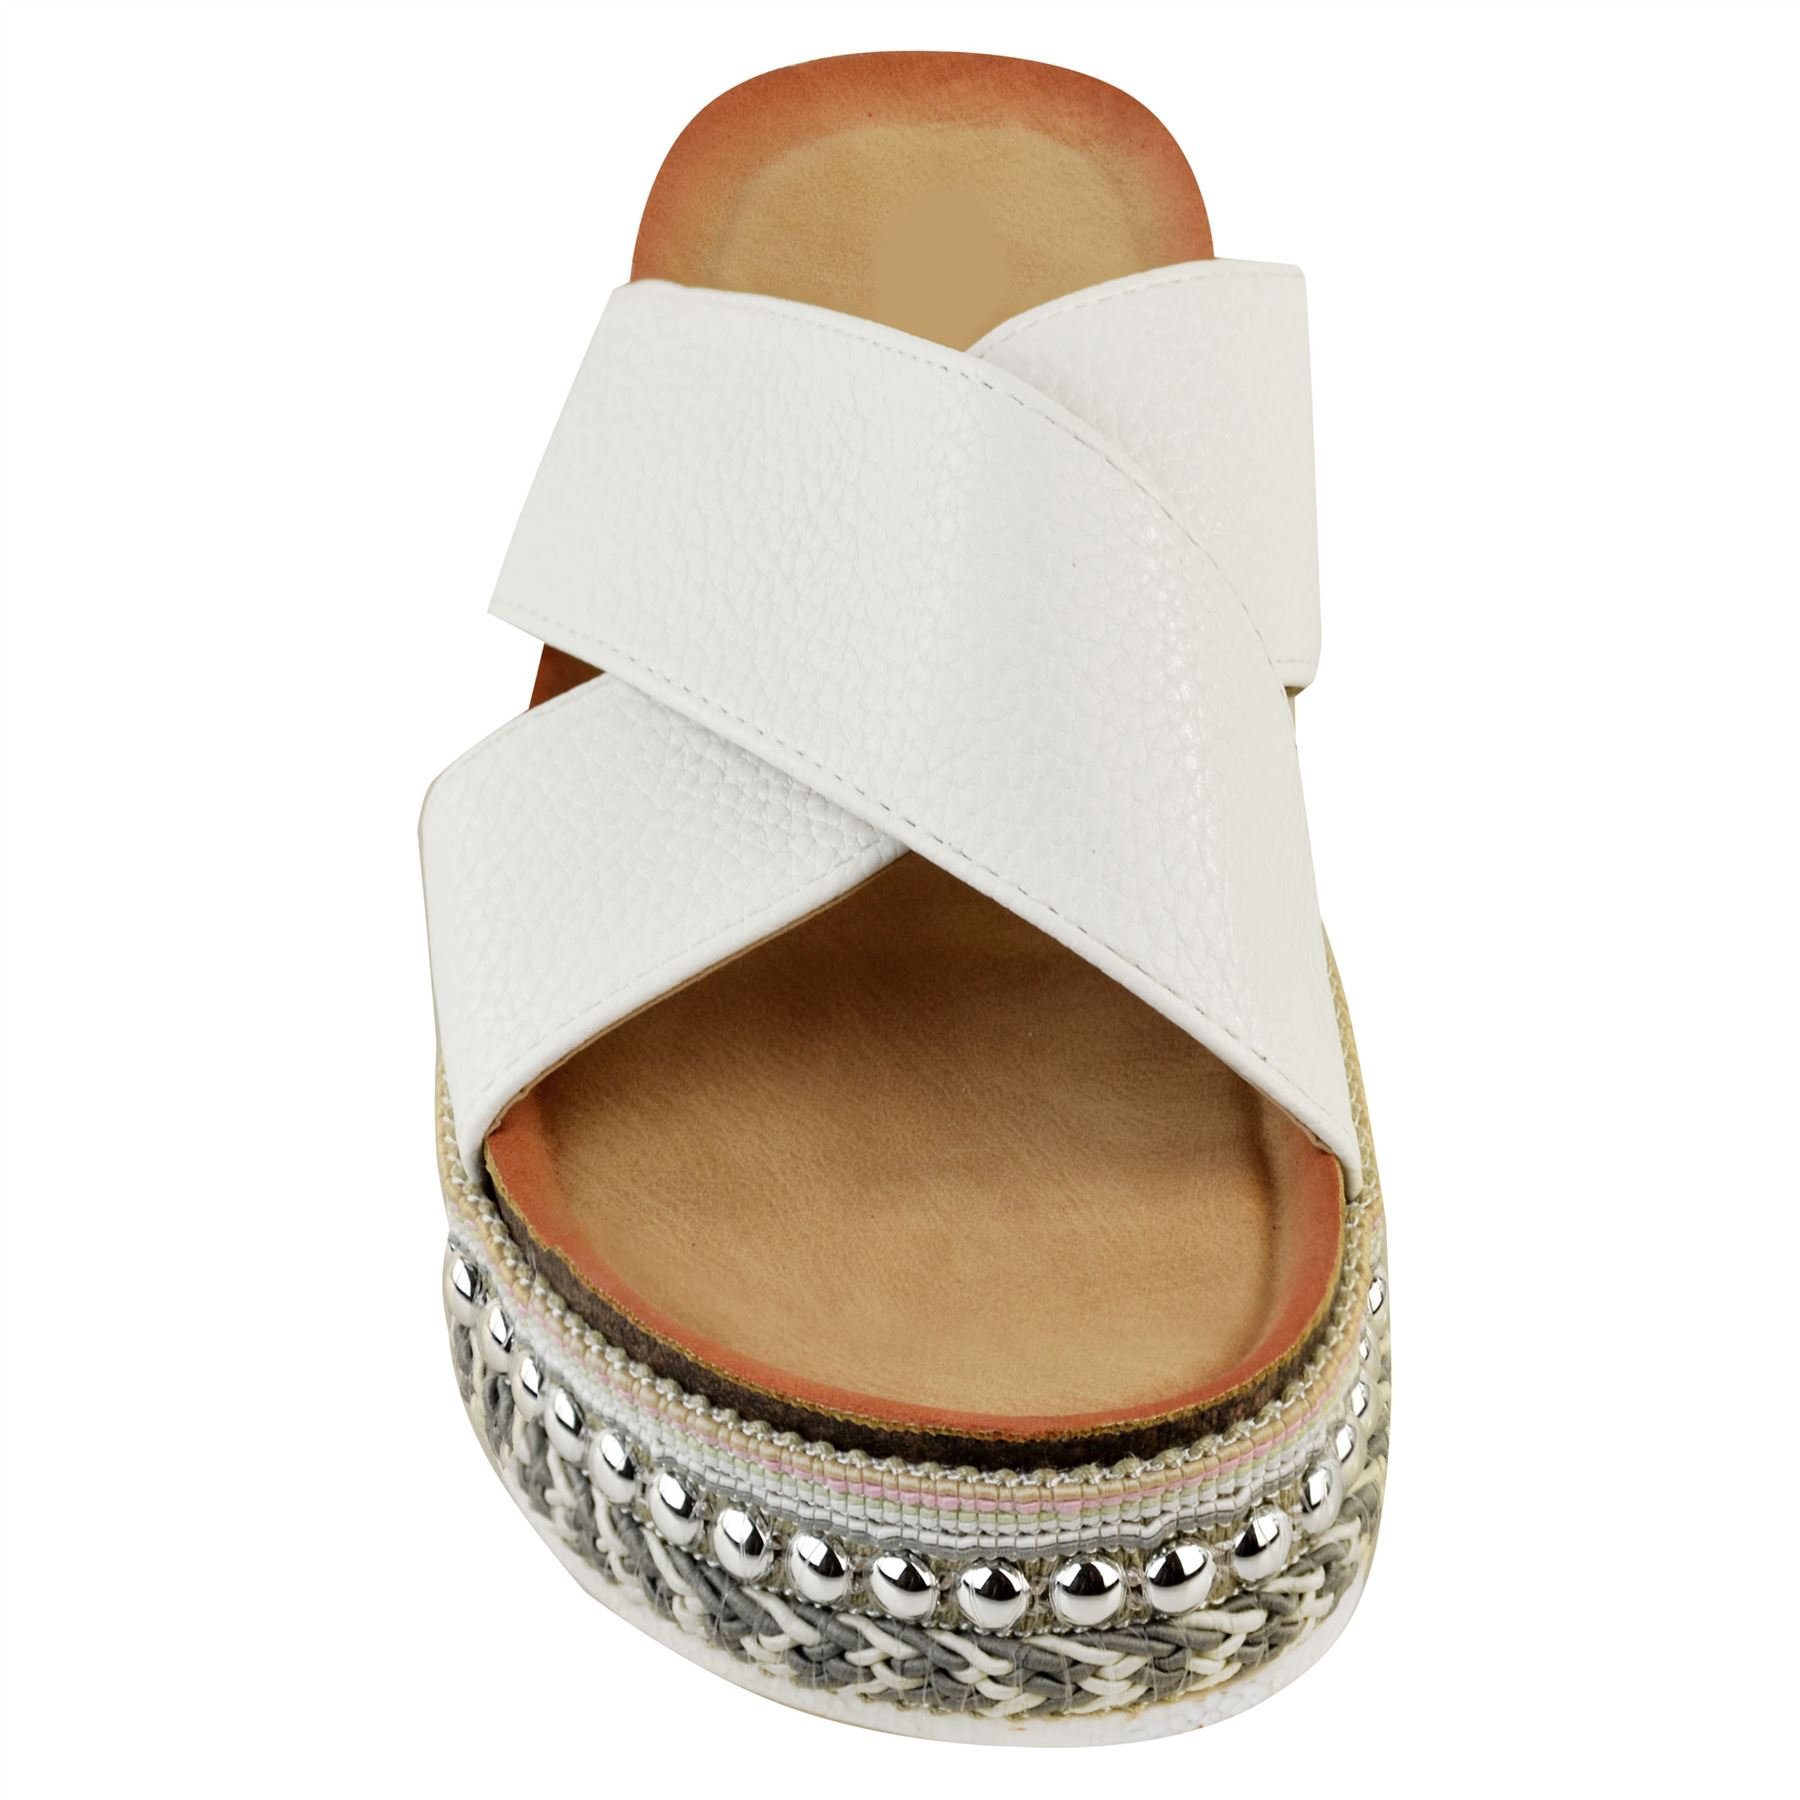 New Womens Bow Flatform Sandals Peep Toe Ladies Pearl Stud Wedges Shoes Platform